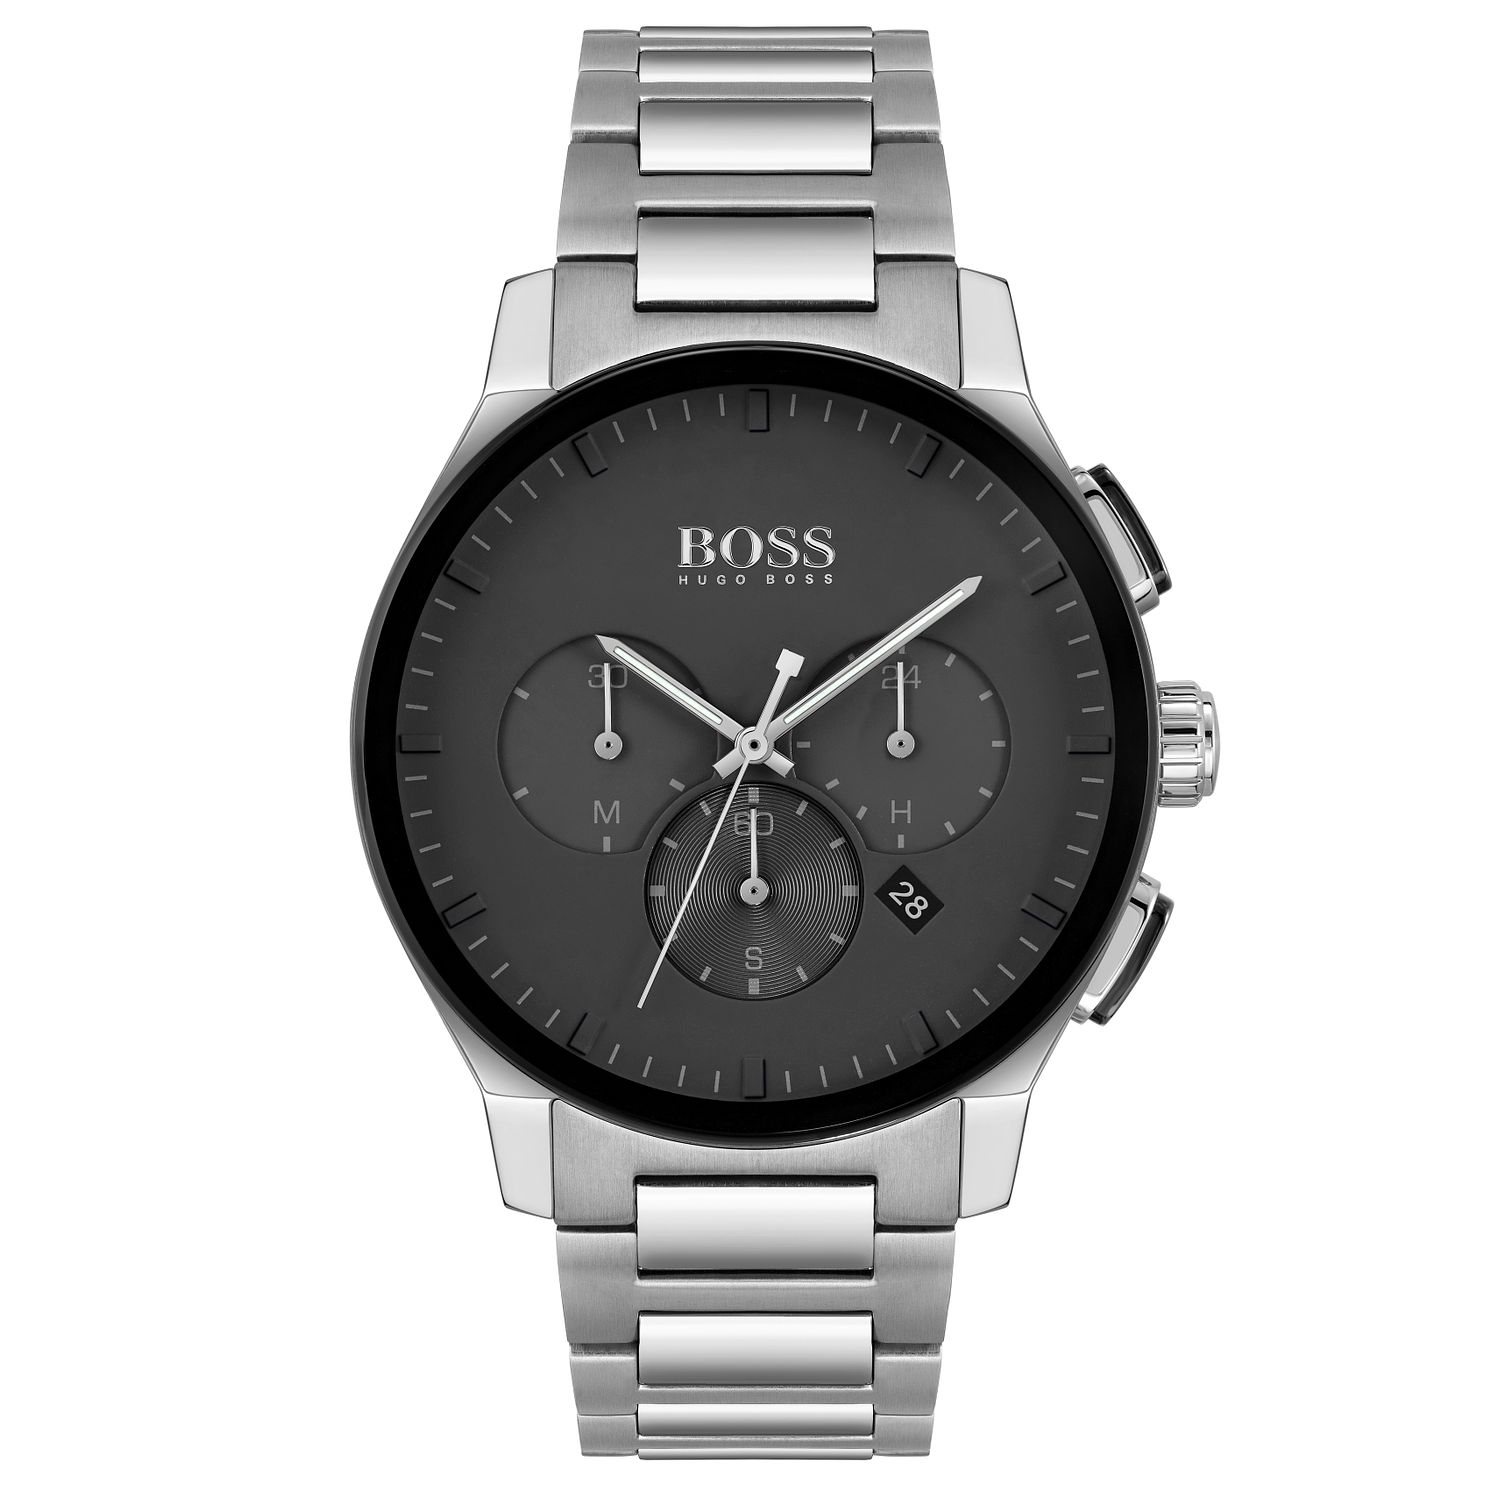 BOSS Peak Chronograph Men's Stainless Steel Bracelet Watch - Product number 4660161